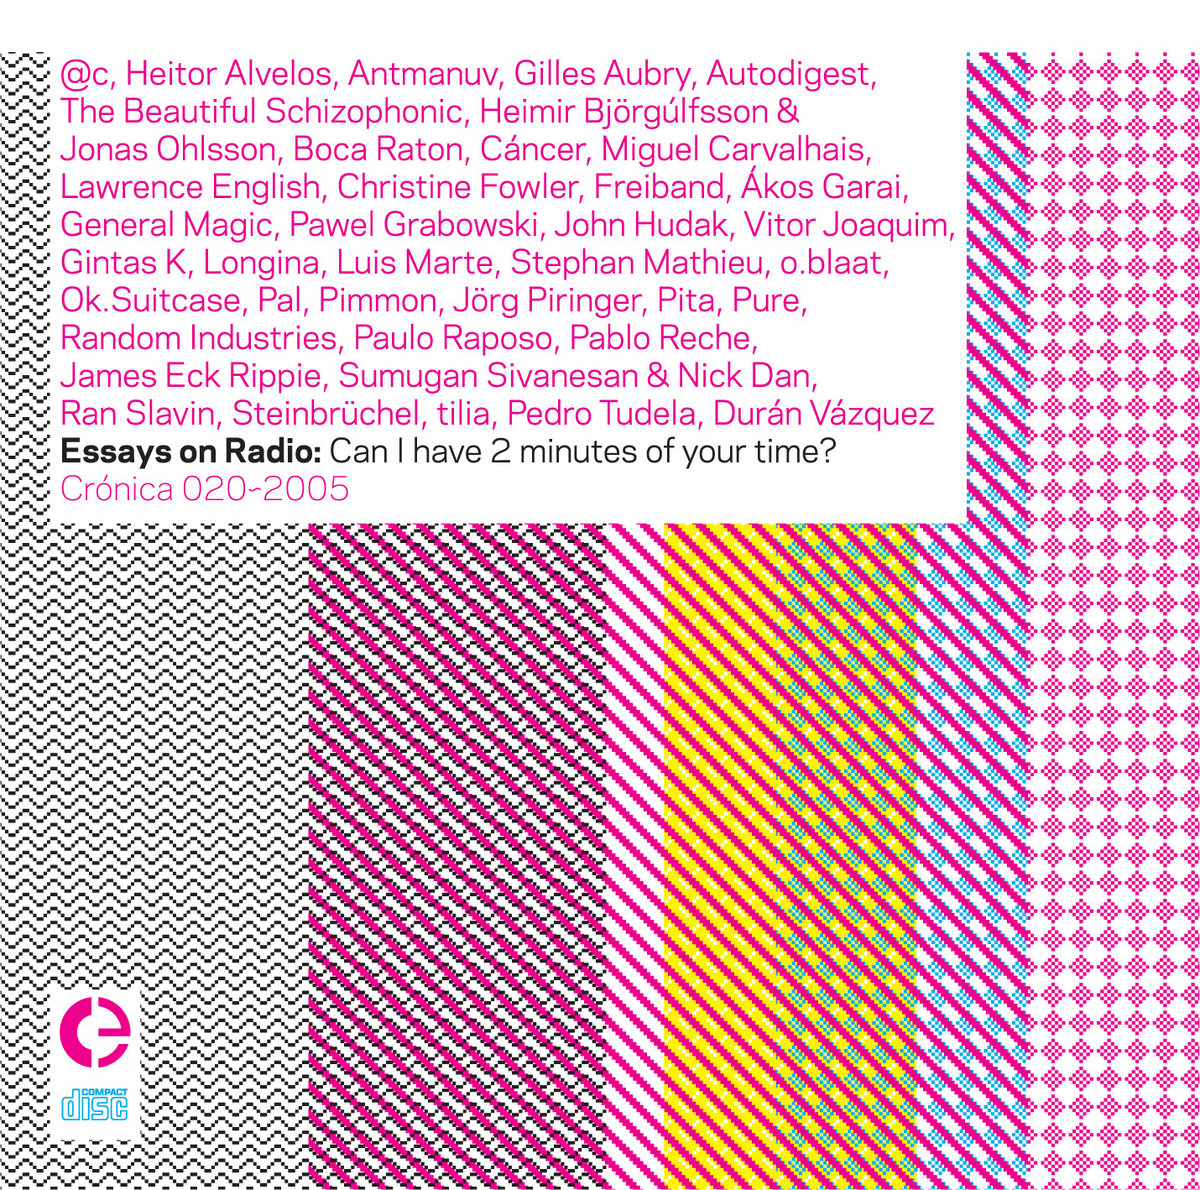 essays on radio can i have minutes of your time cronica by various artists